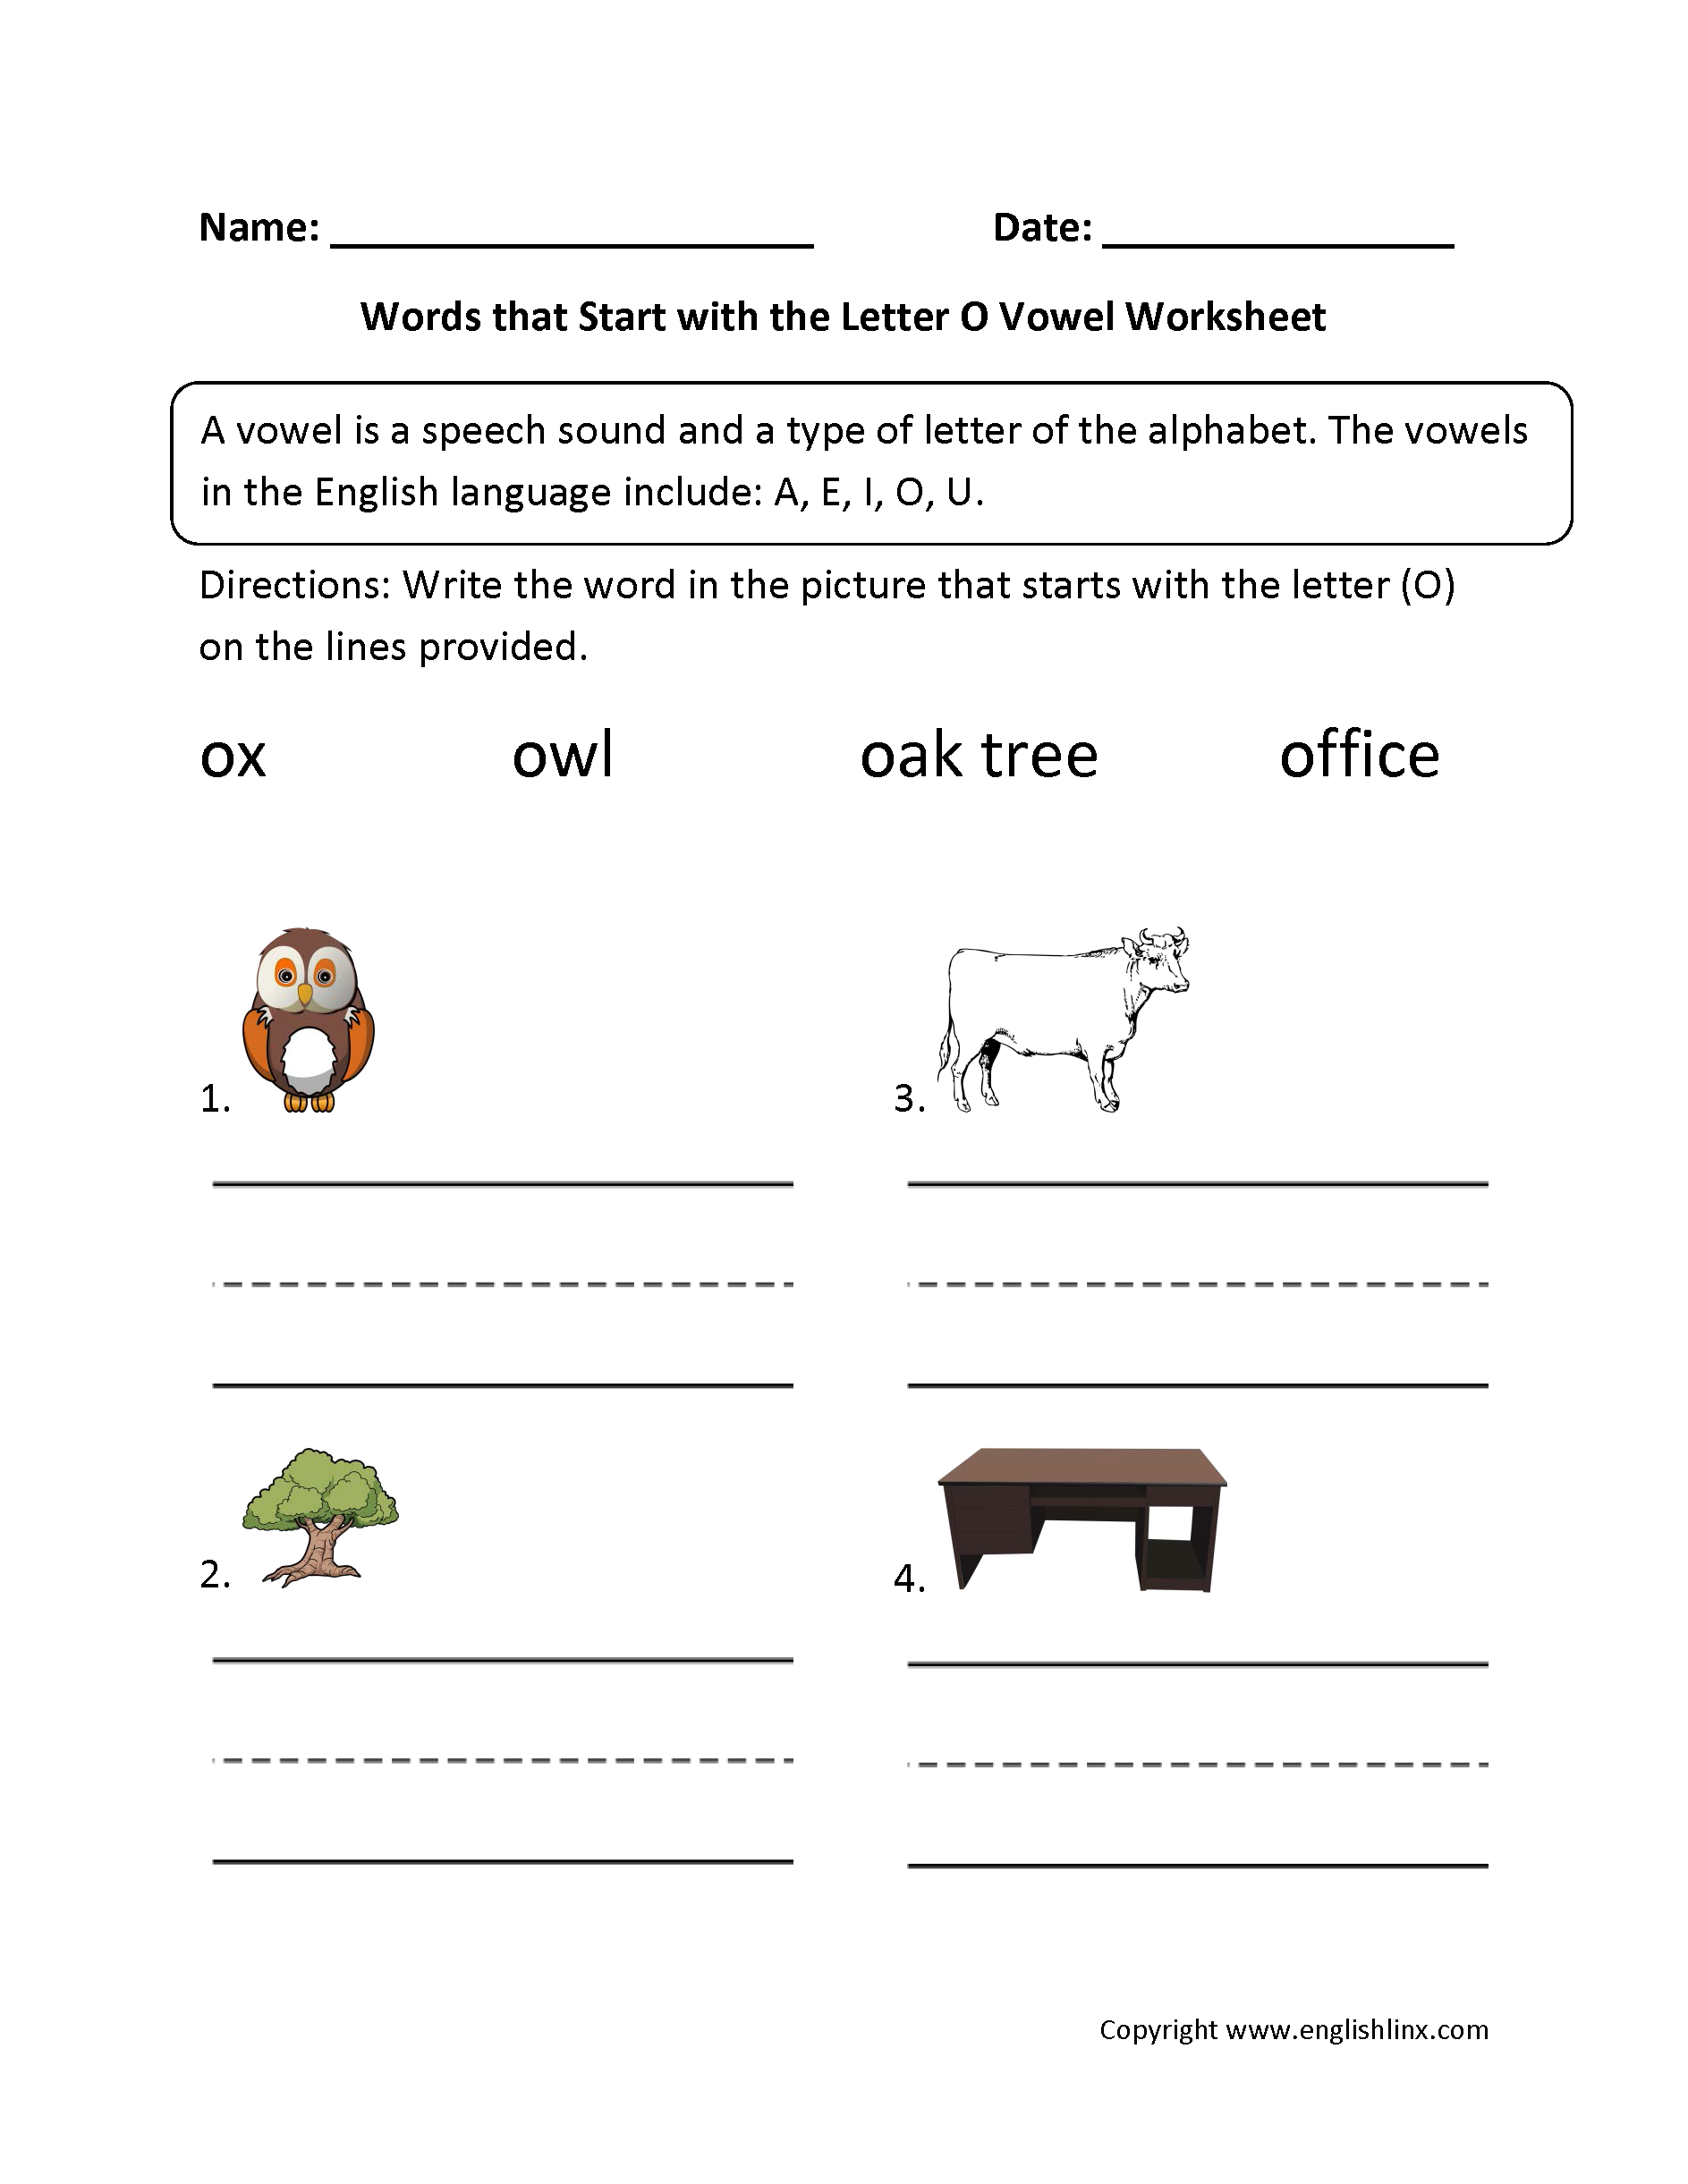 Words Start Letter O Vowel Worksheets  EnglishlinxCom Board